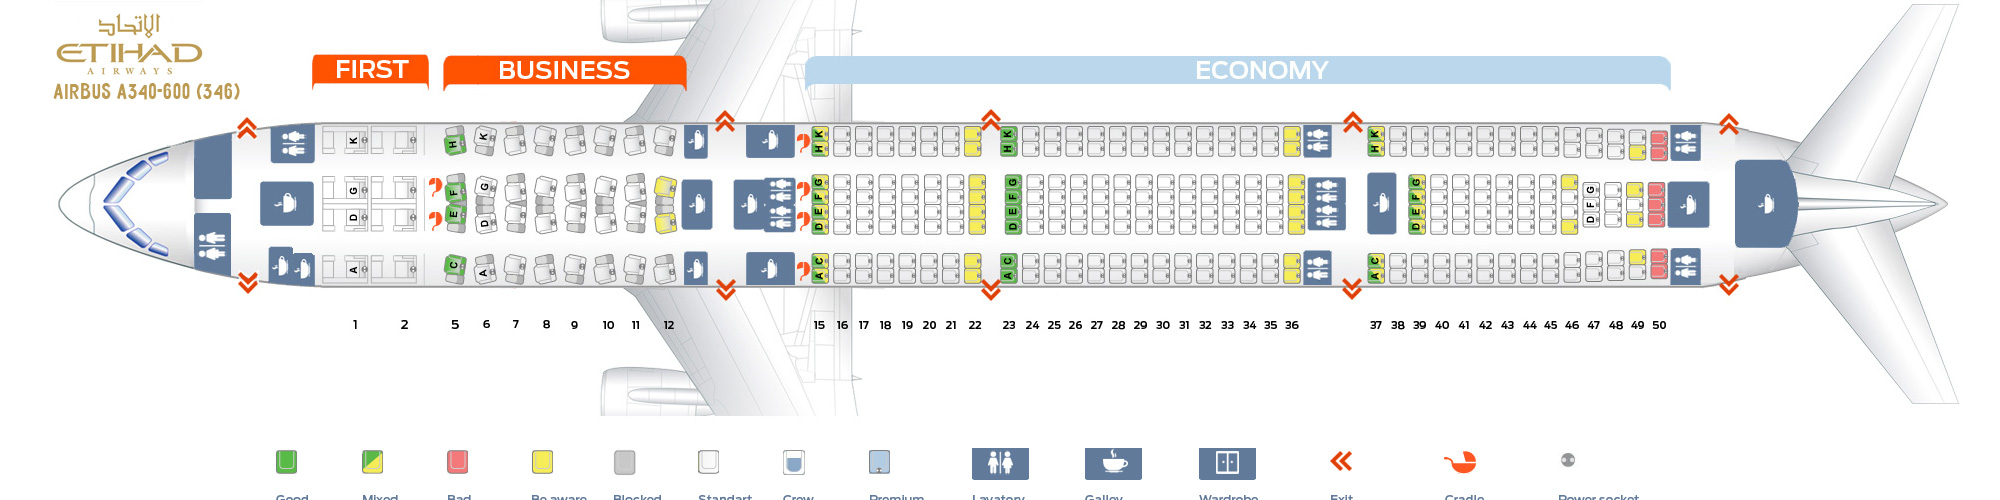 Seat Map Airbus A340-600 Etihad Airways